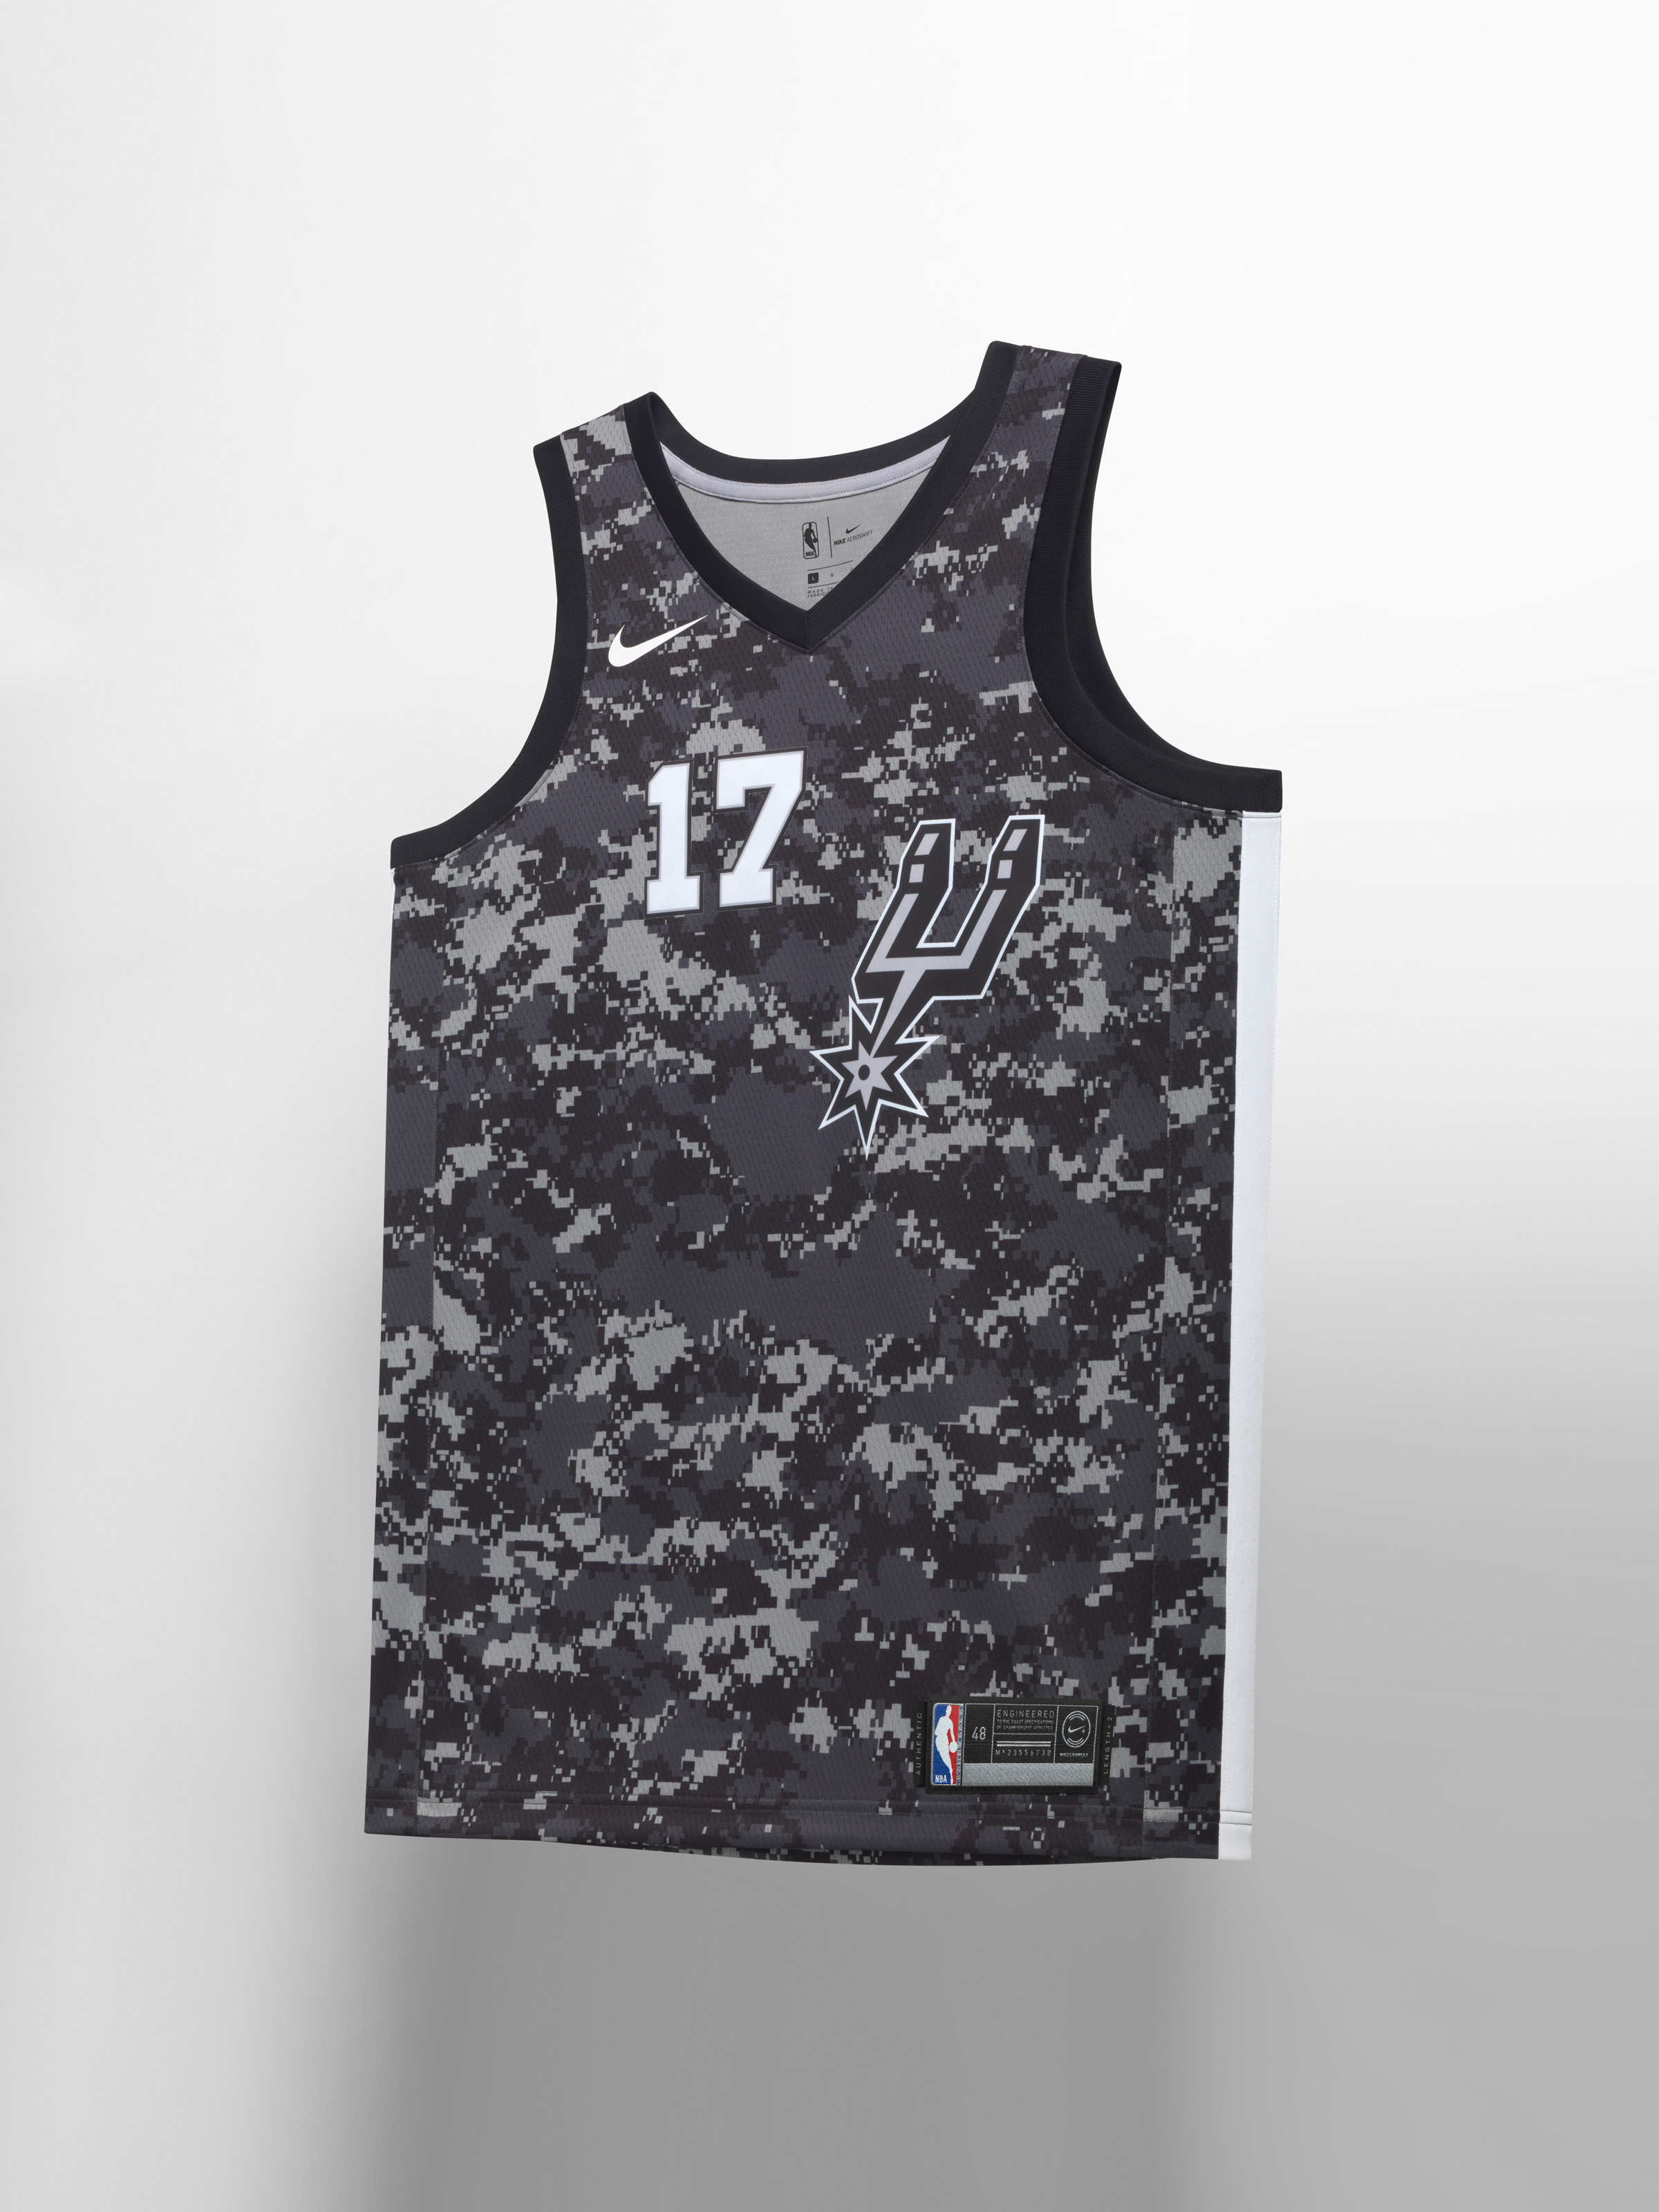 Nike s NBA City Edition jerseys  What they say about your city — Quartzy b28cb2143